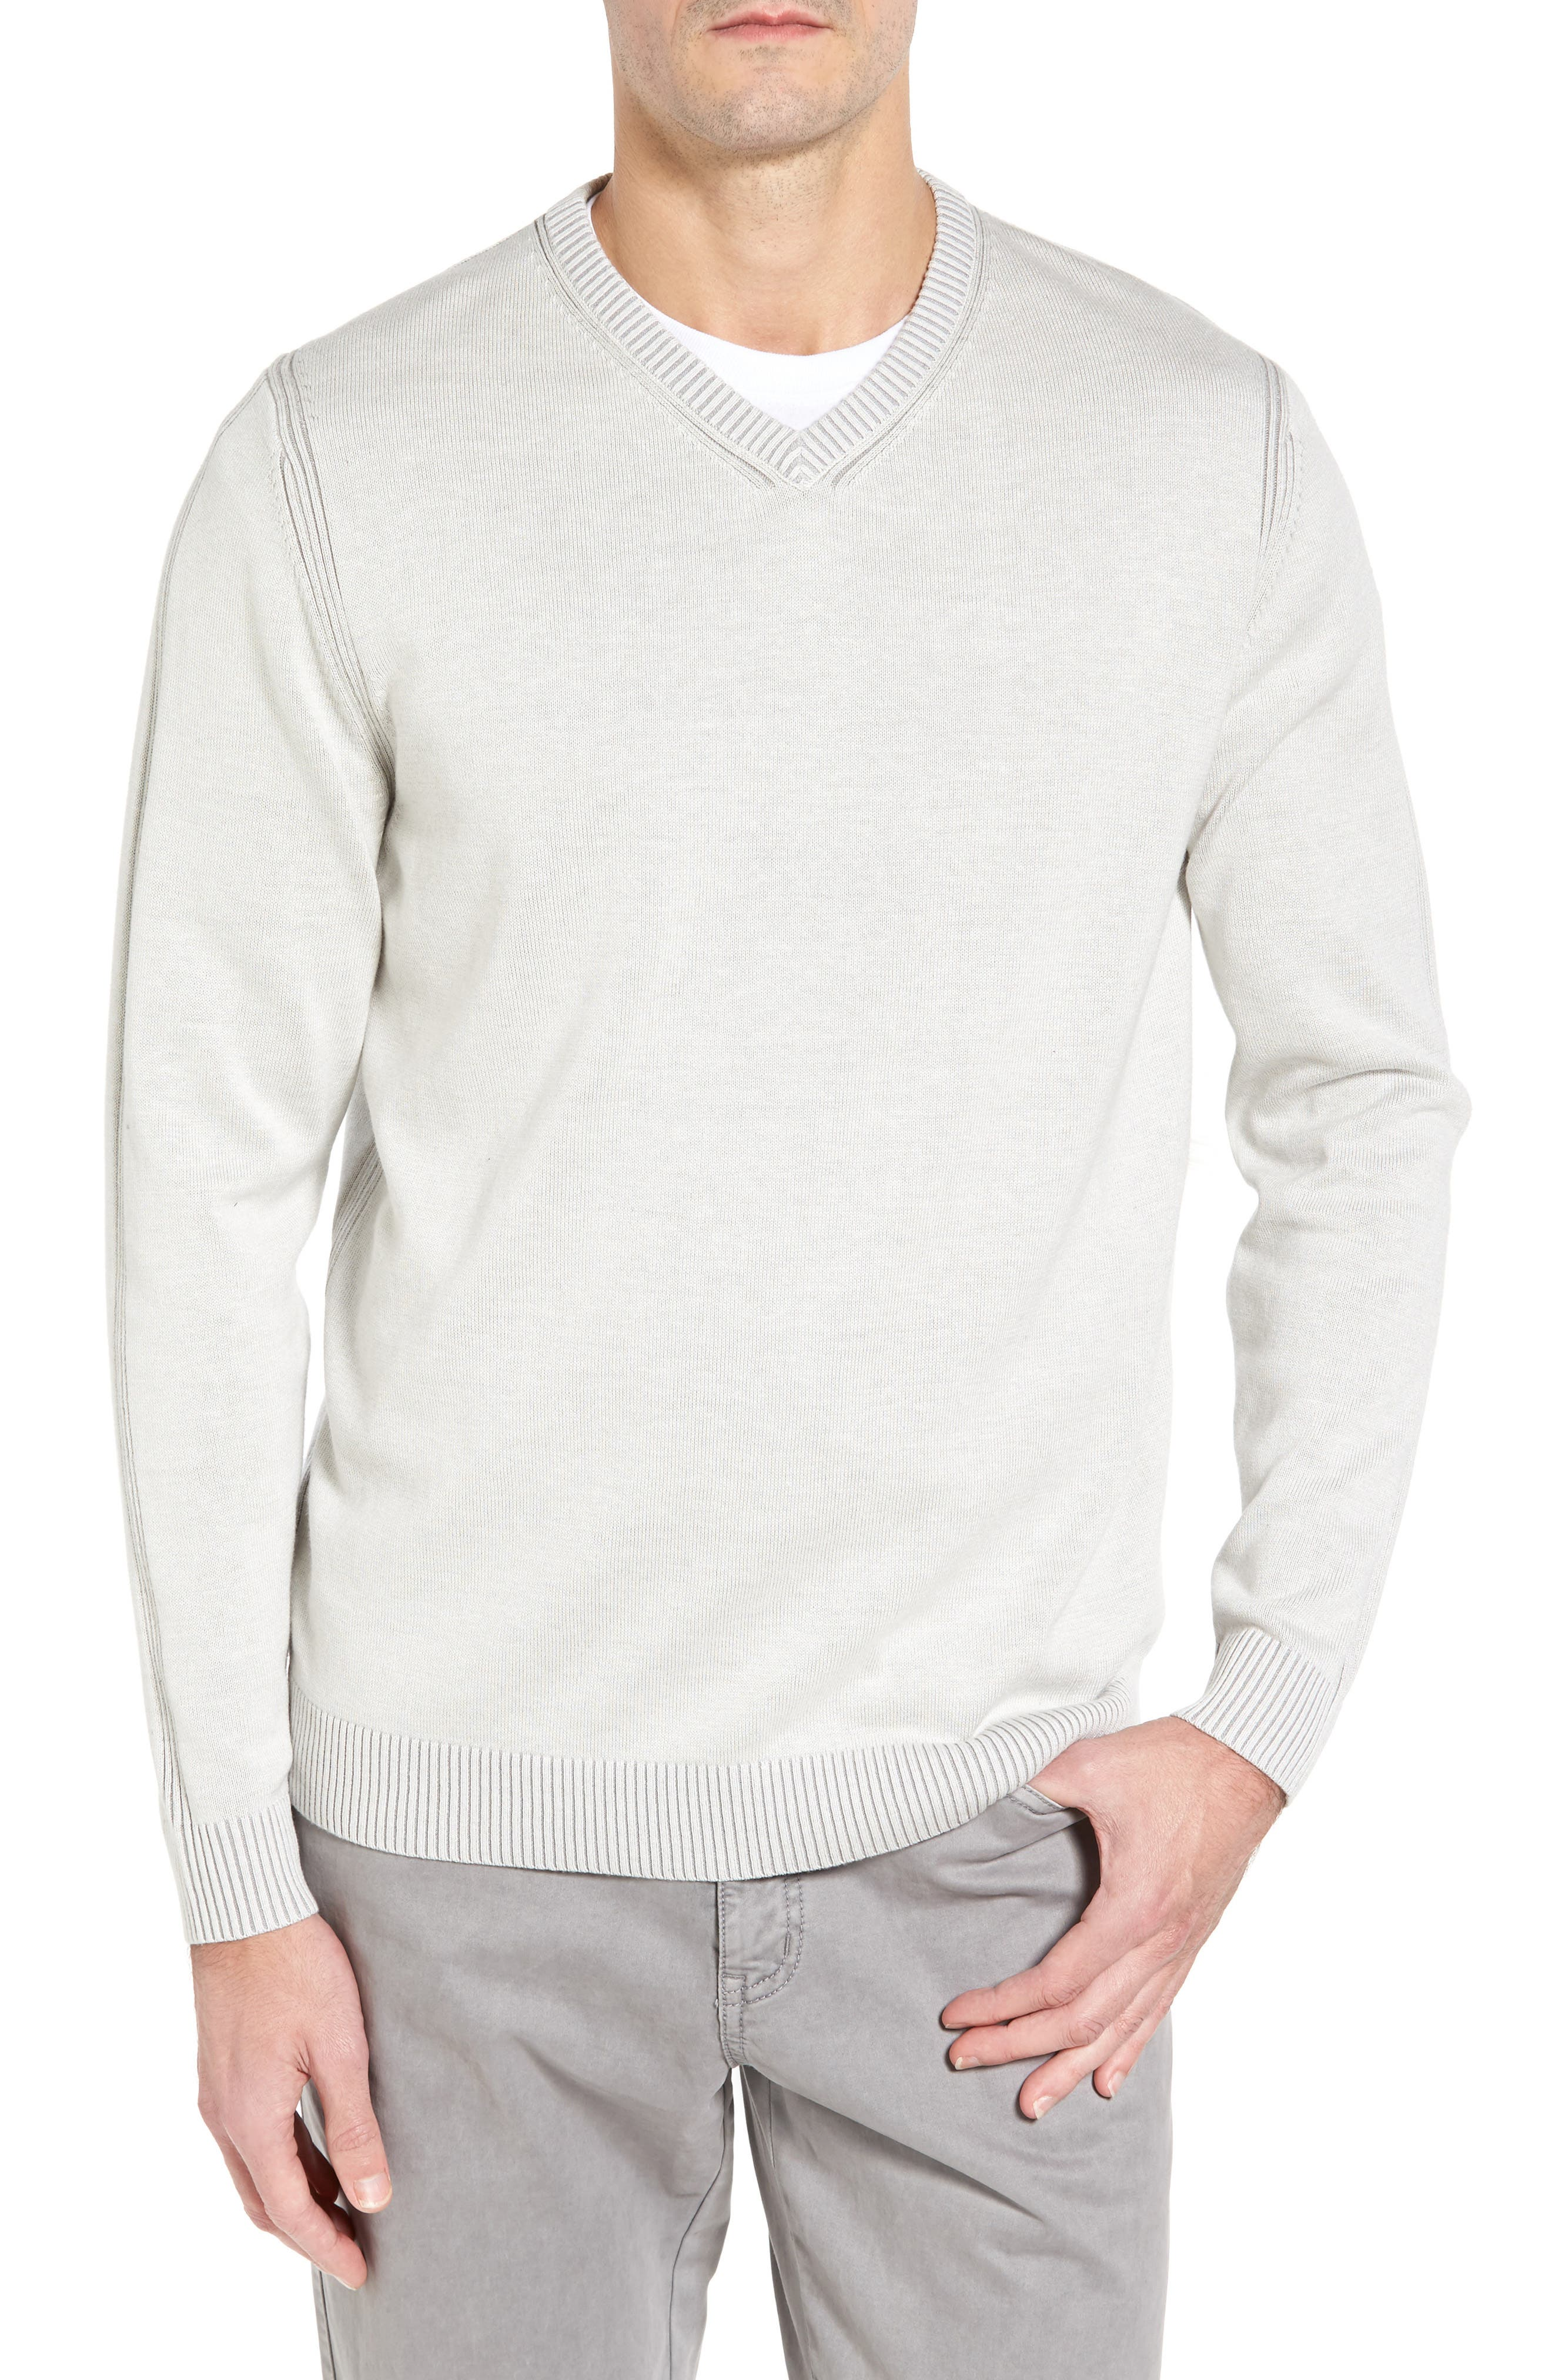 Tommy Bahama Chief Island Officer Silk Blend Sweater